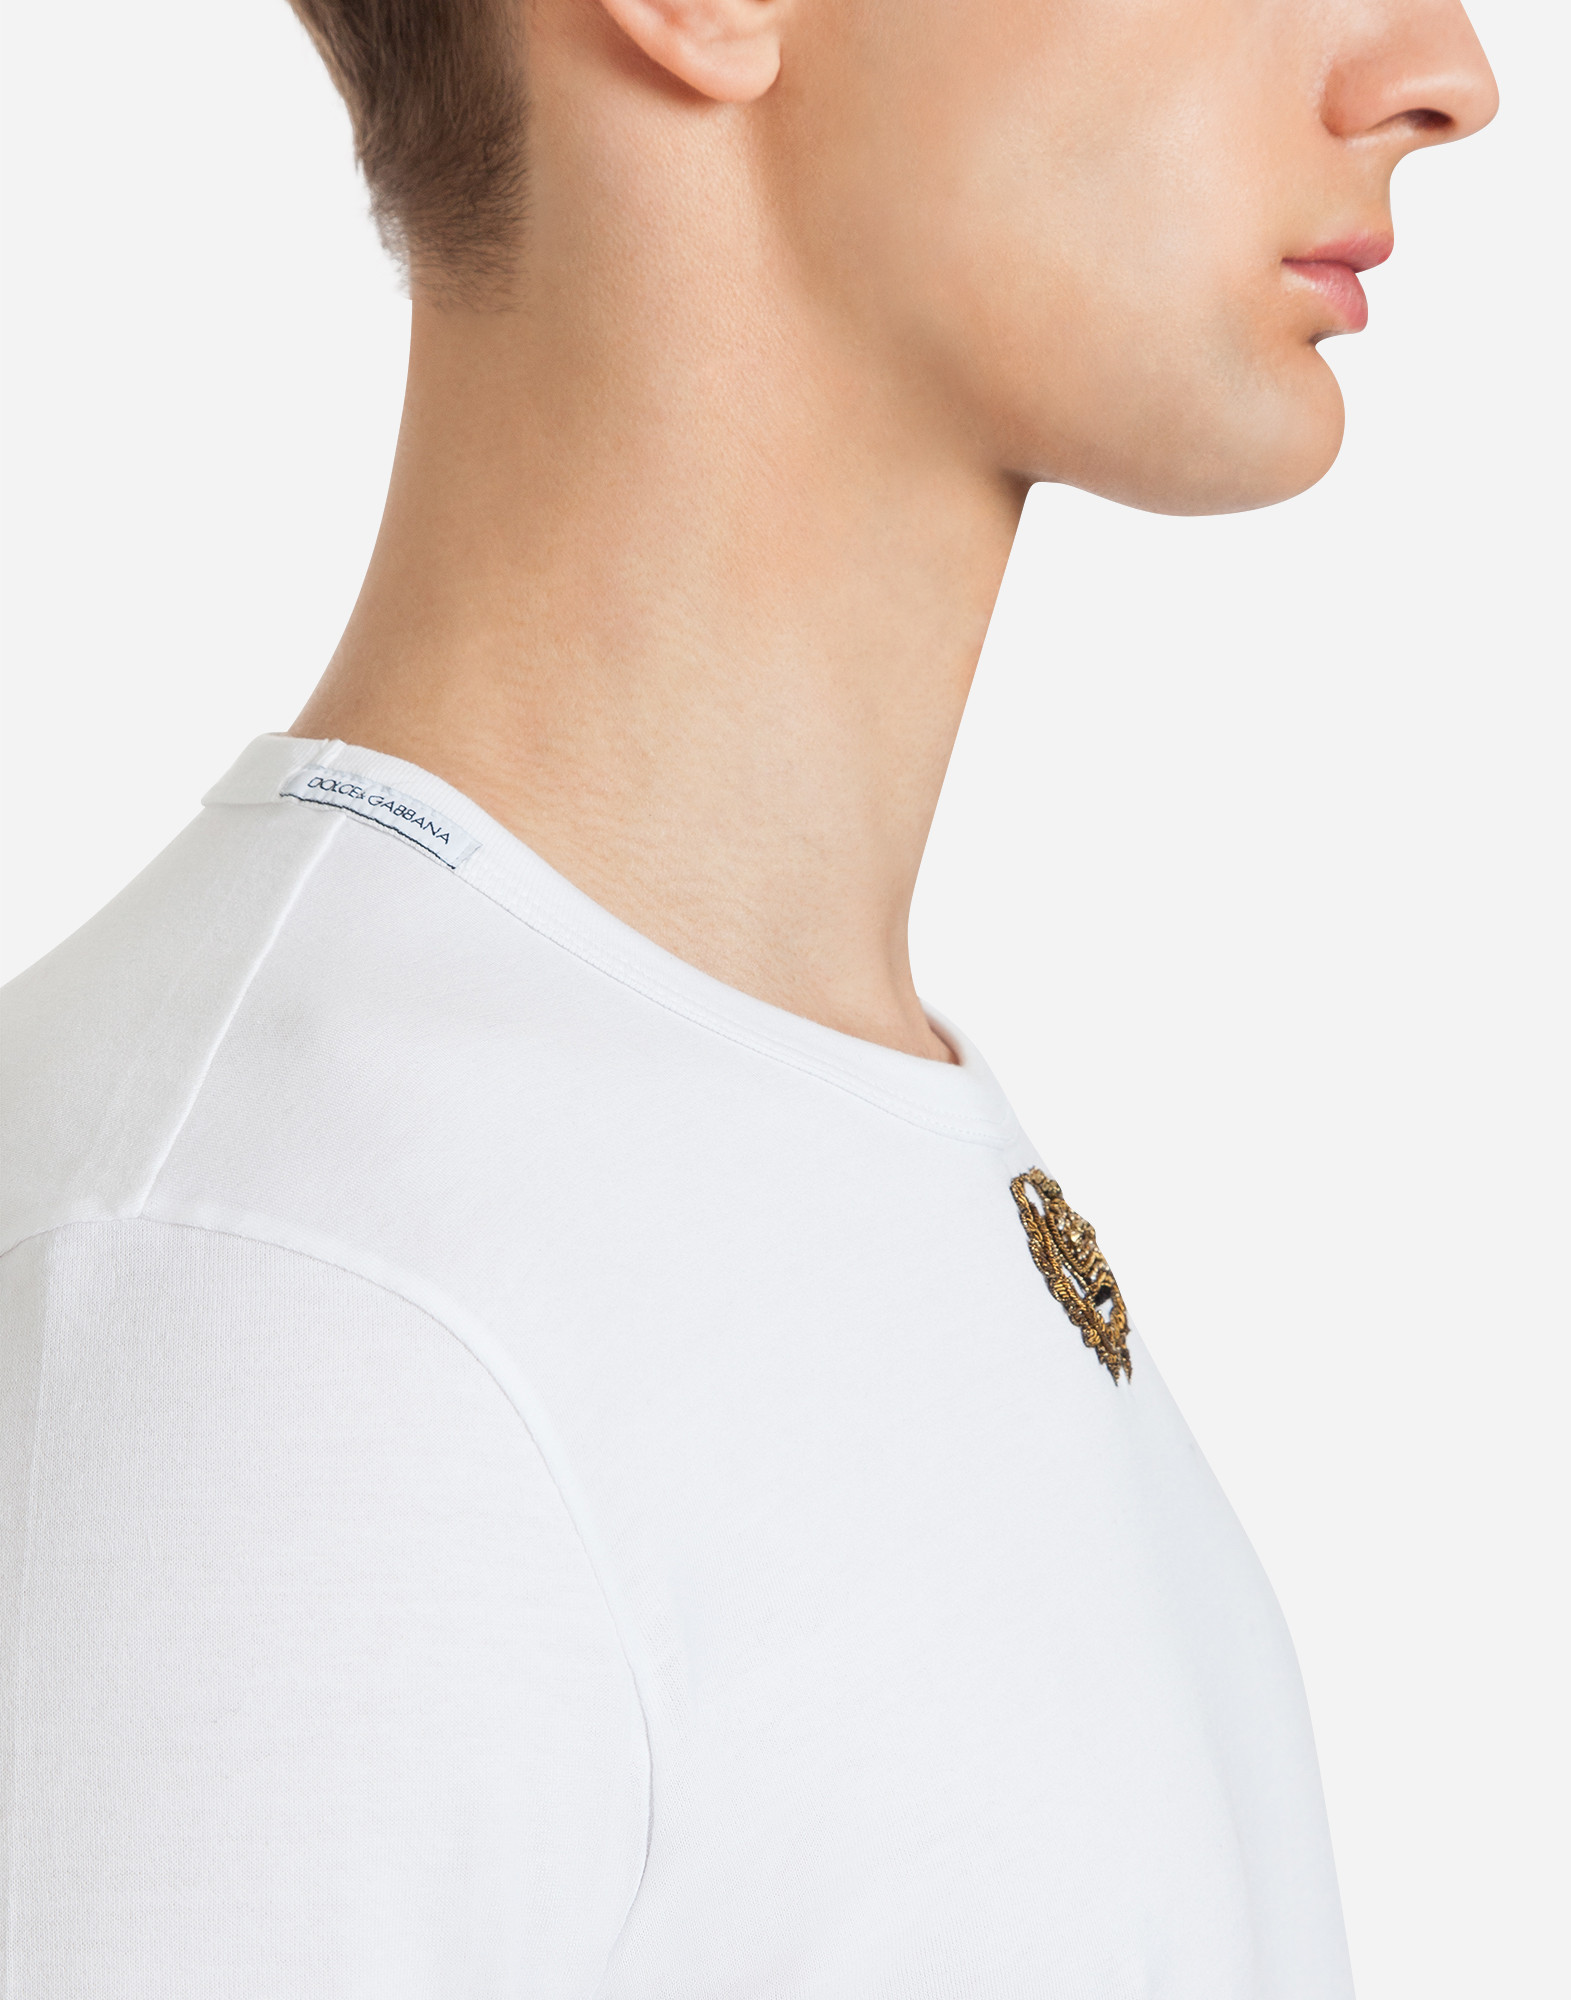 Dolce&Gabbana COTTON T-SHIRT WITH EMBROIDERY